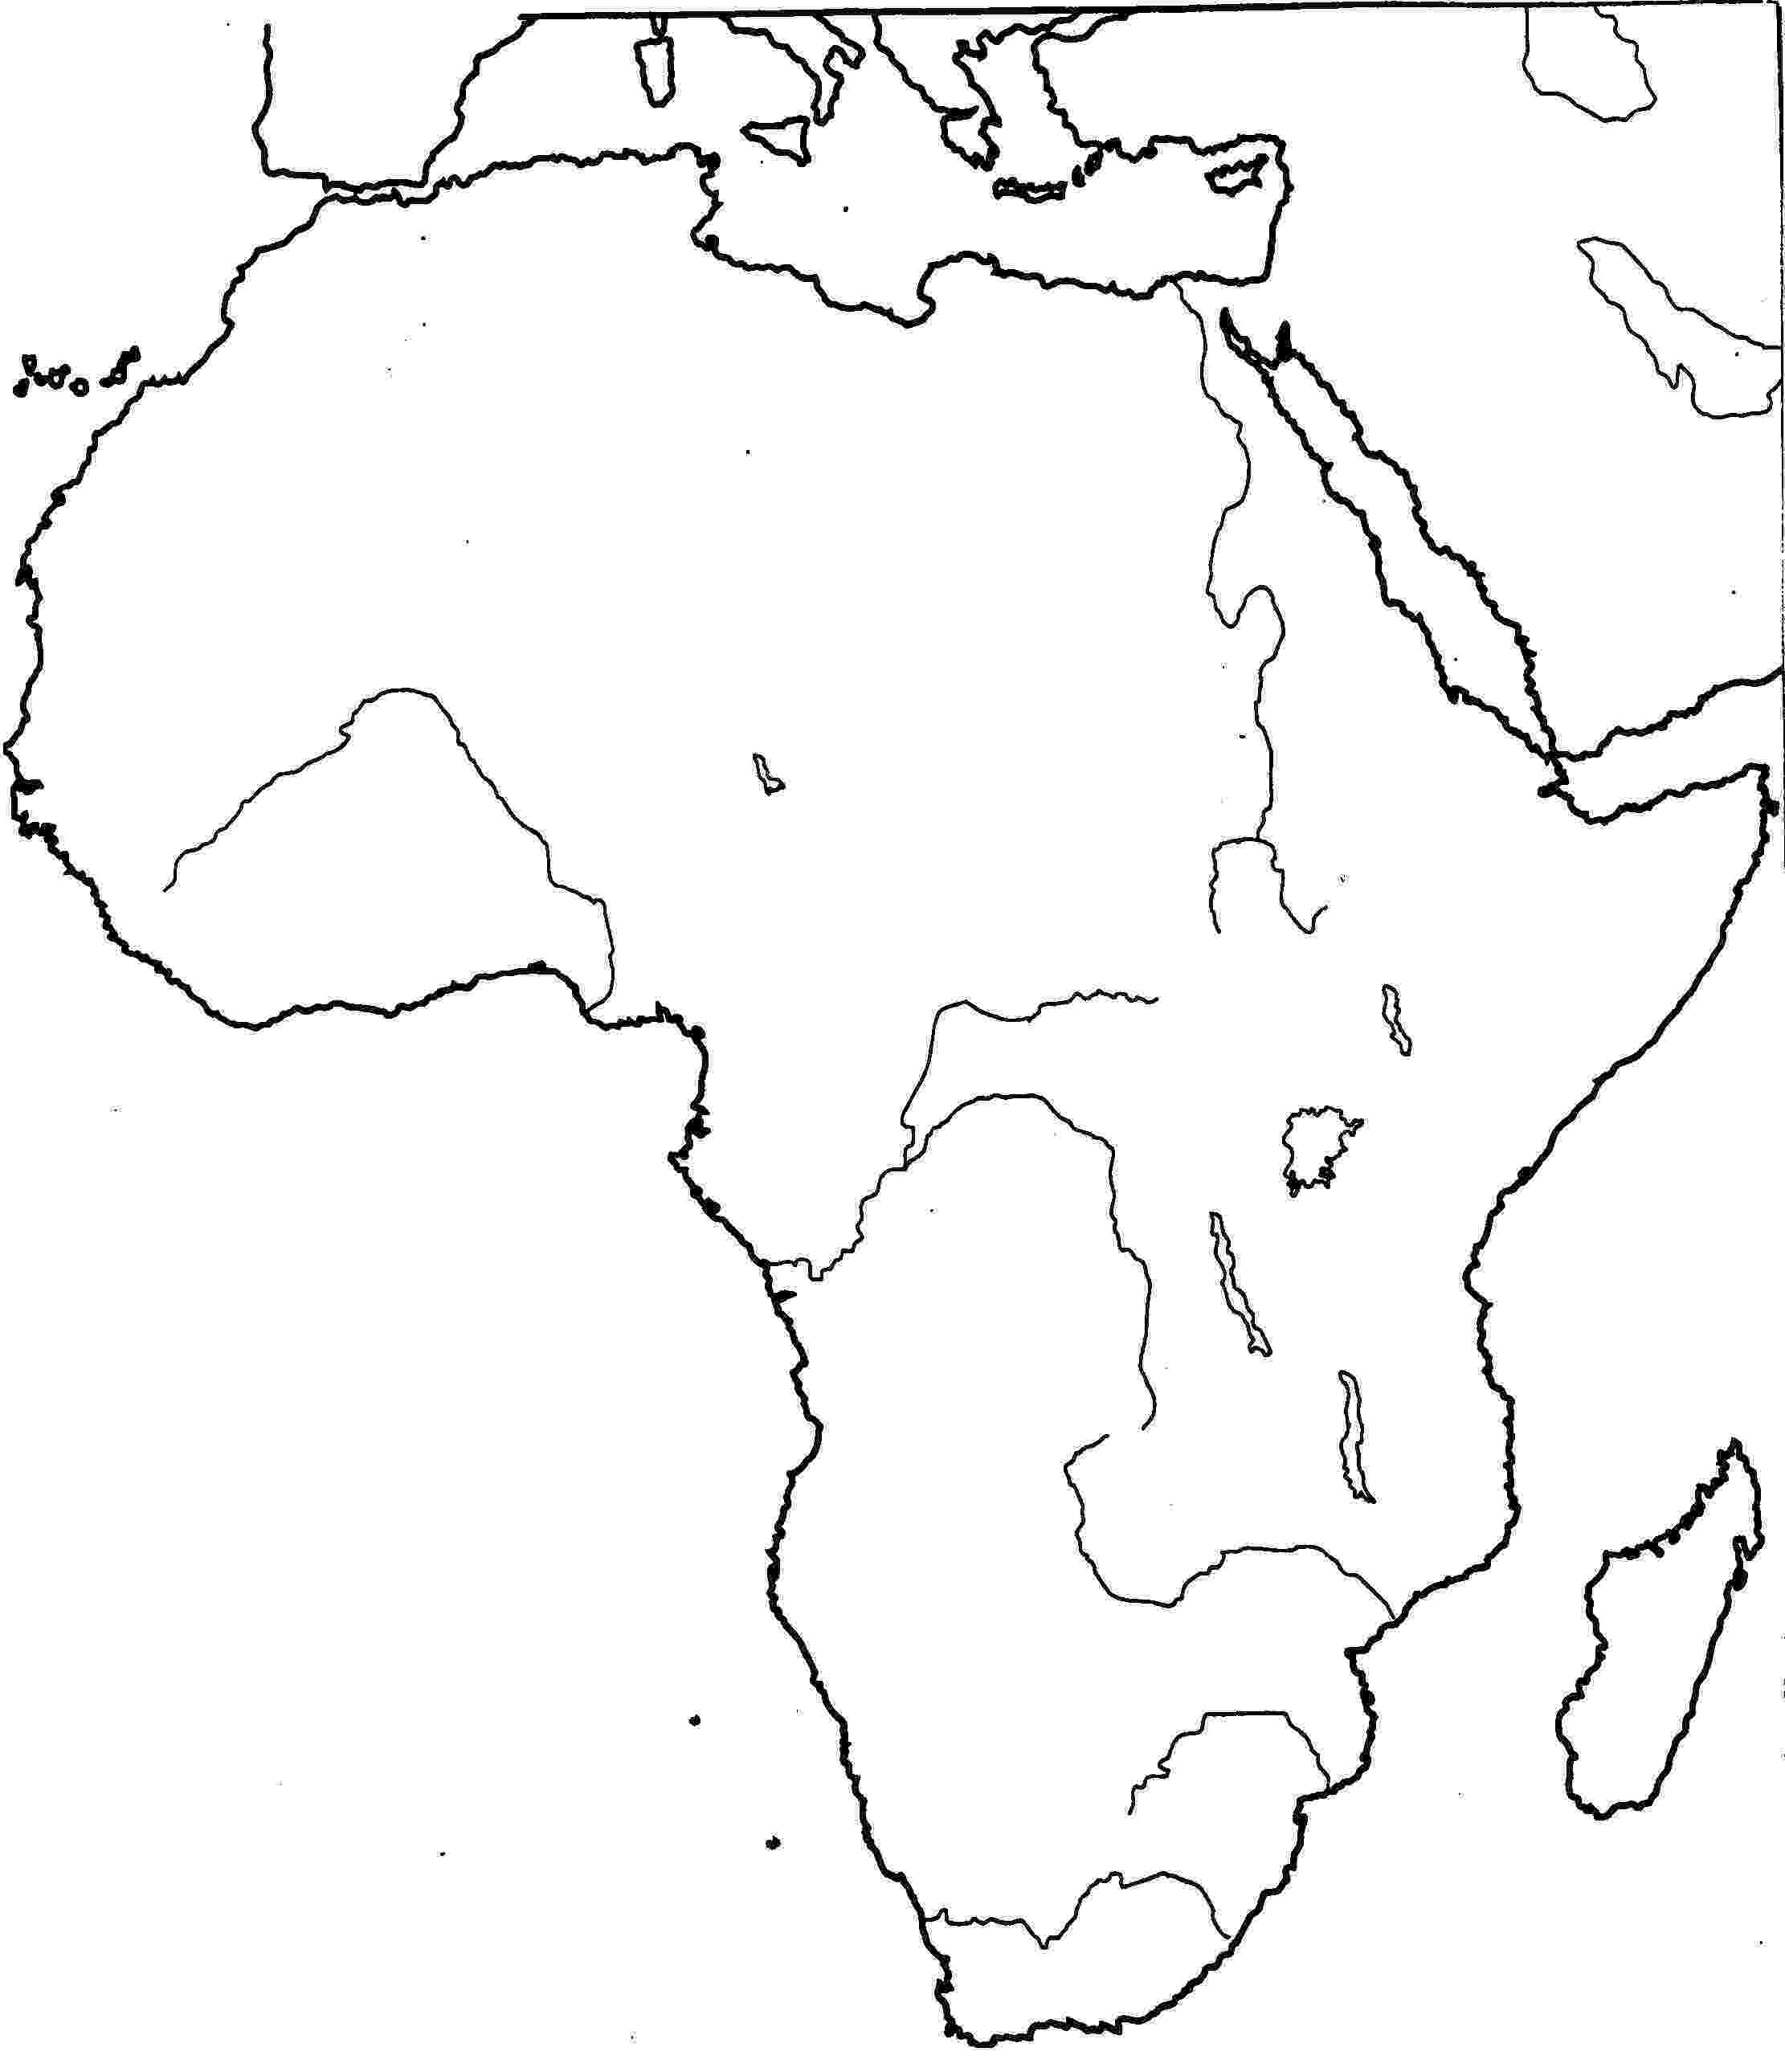 printable map of africa free puzzle piece outline download free clip art free printable of map africa